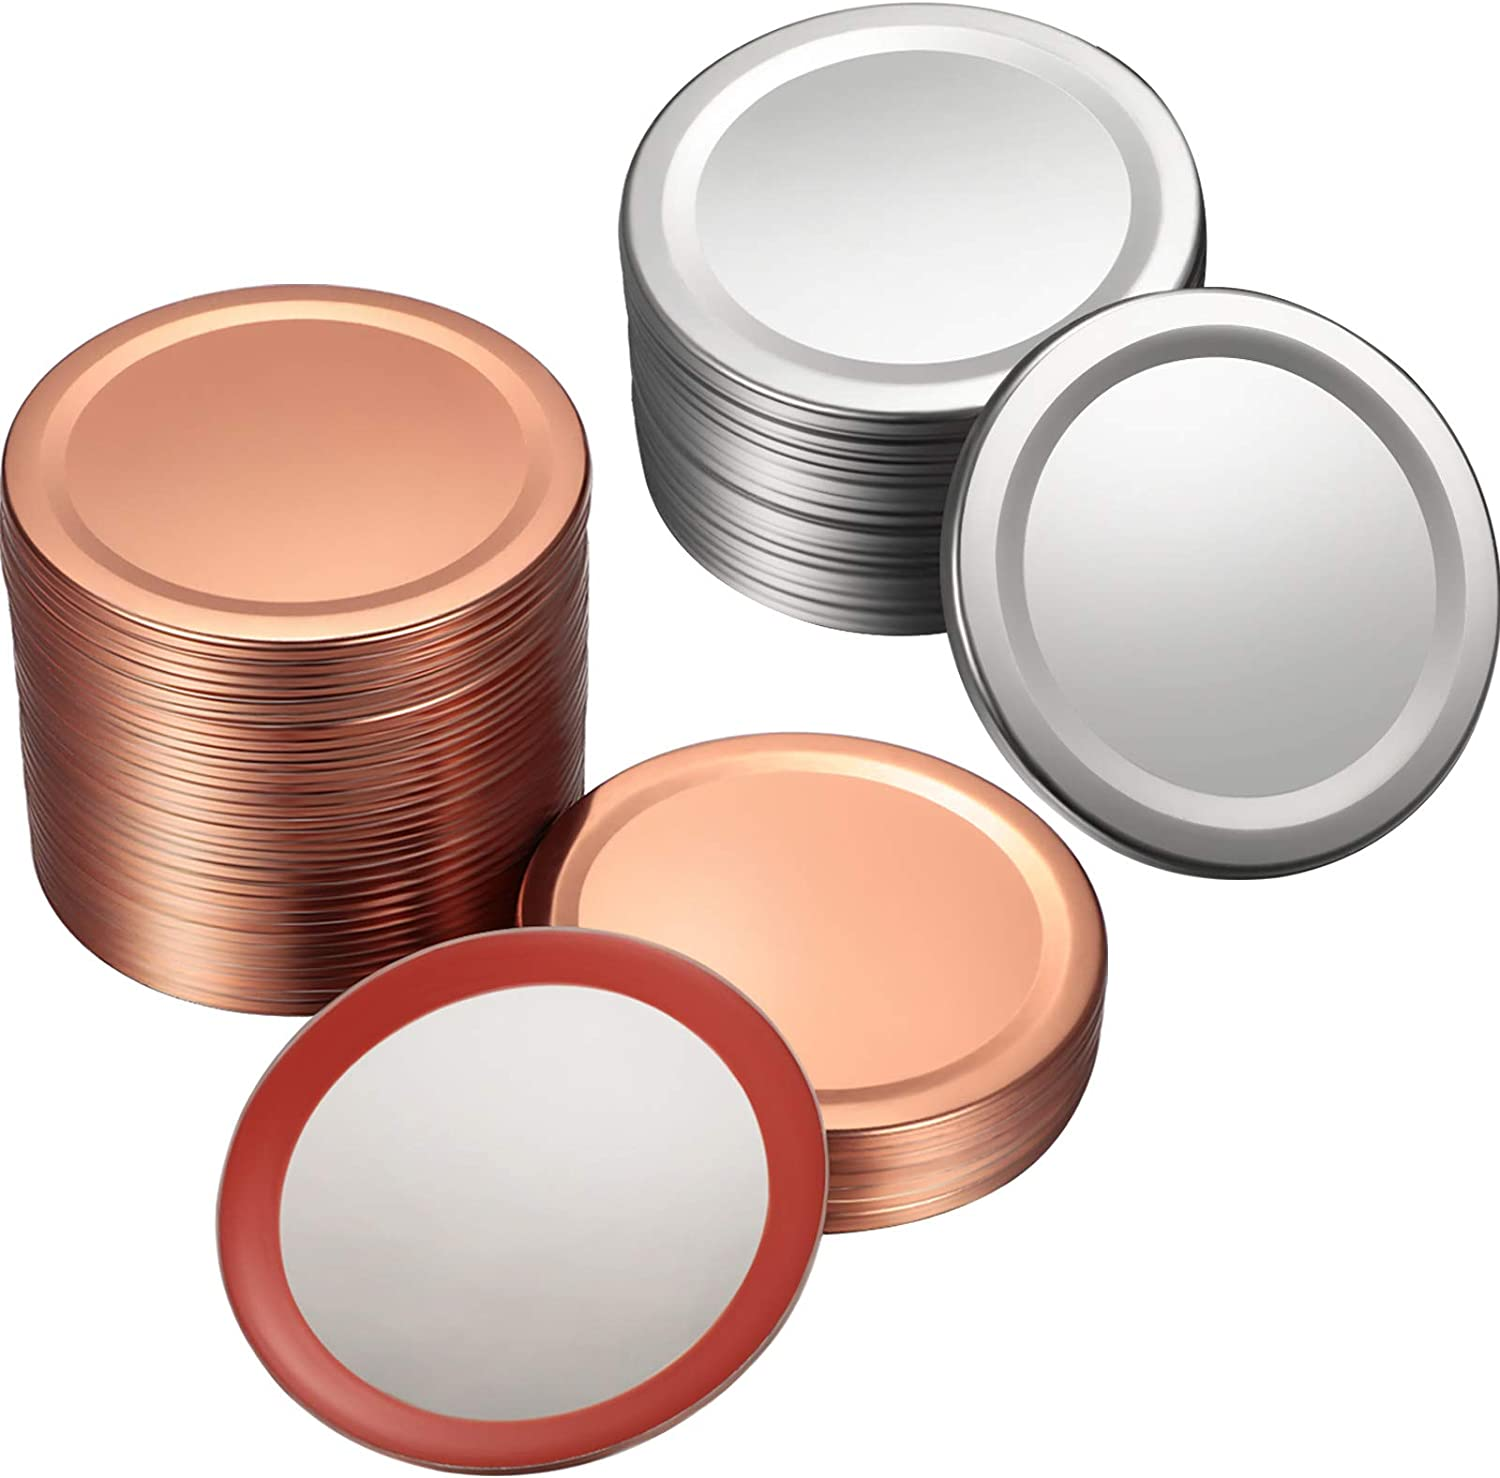 80 Pieces Regular Mouth Canning Lids Regular Mouth Ball Jar Lids Split-Type Lids Secure Canning Jar Caps Compatible with Mason Jars, 70 mm (Silver, Rose Gold)